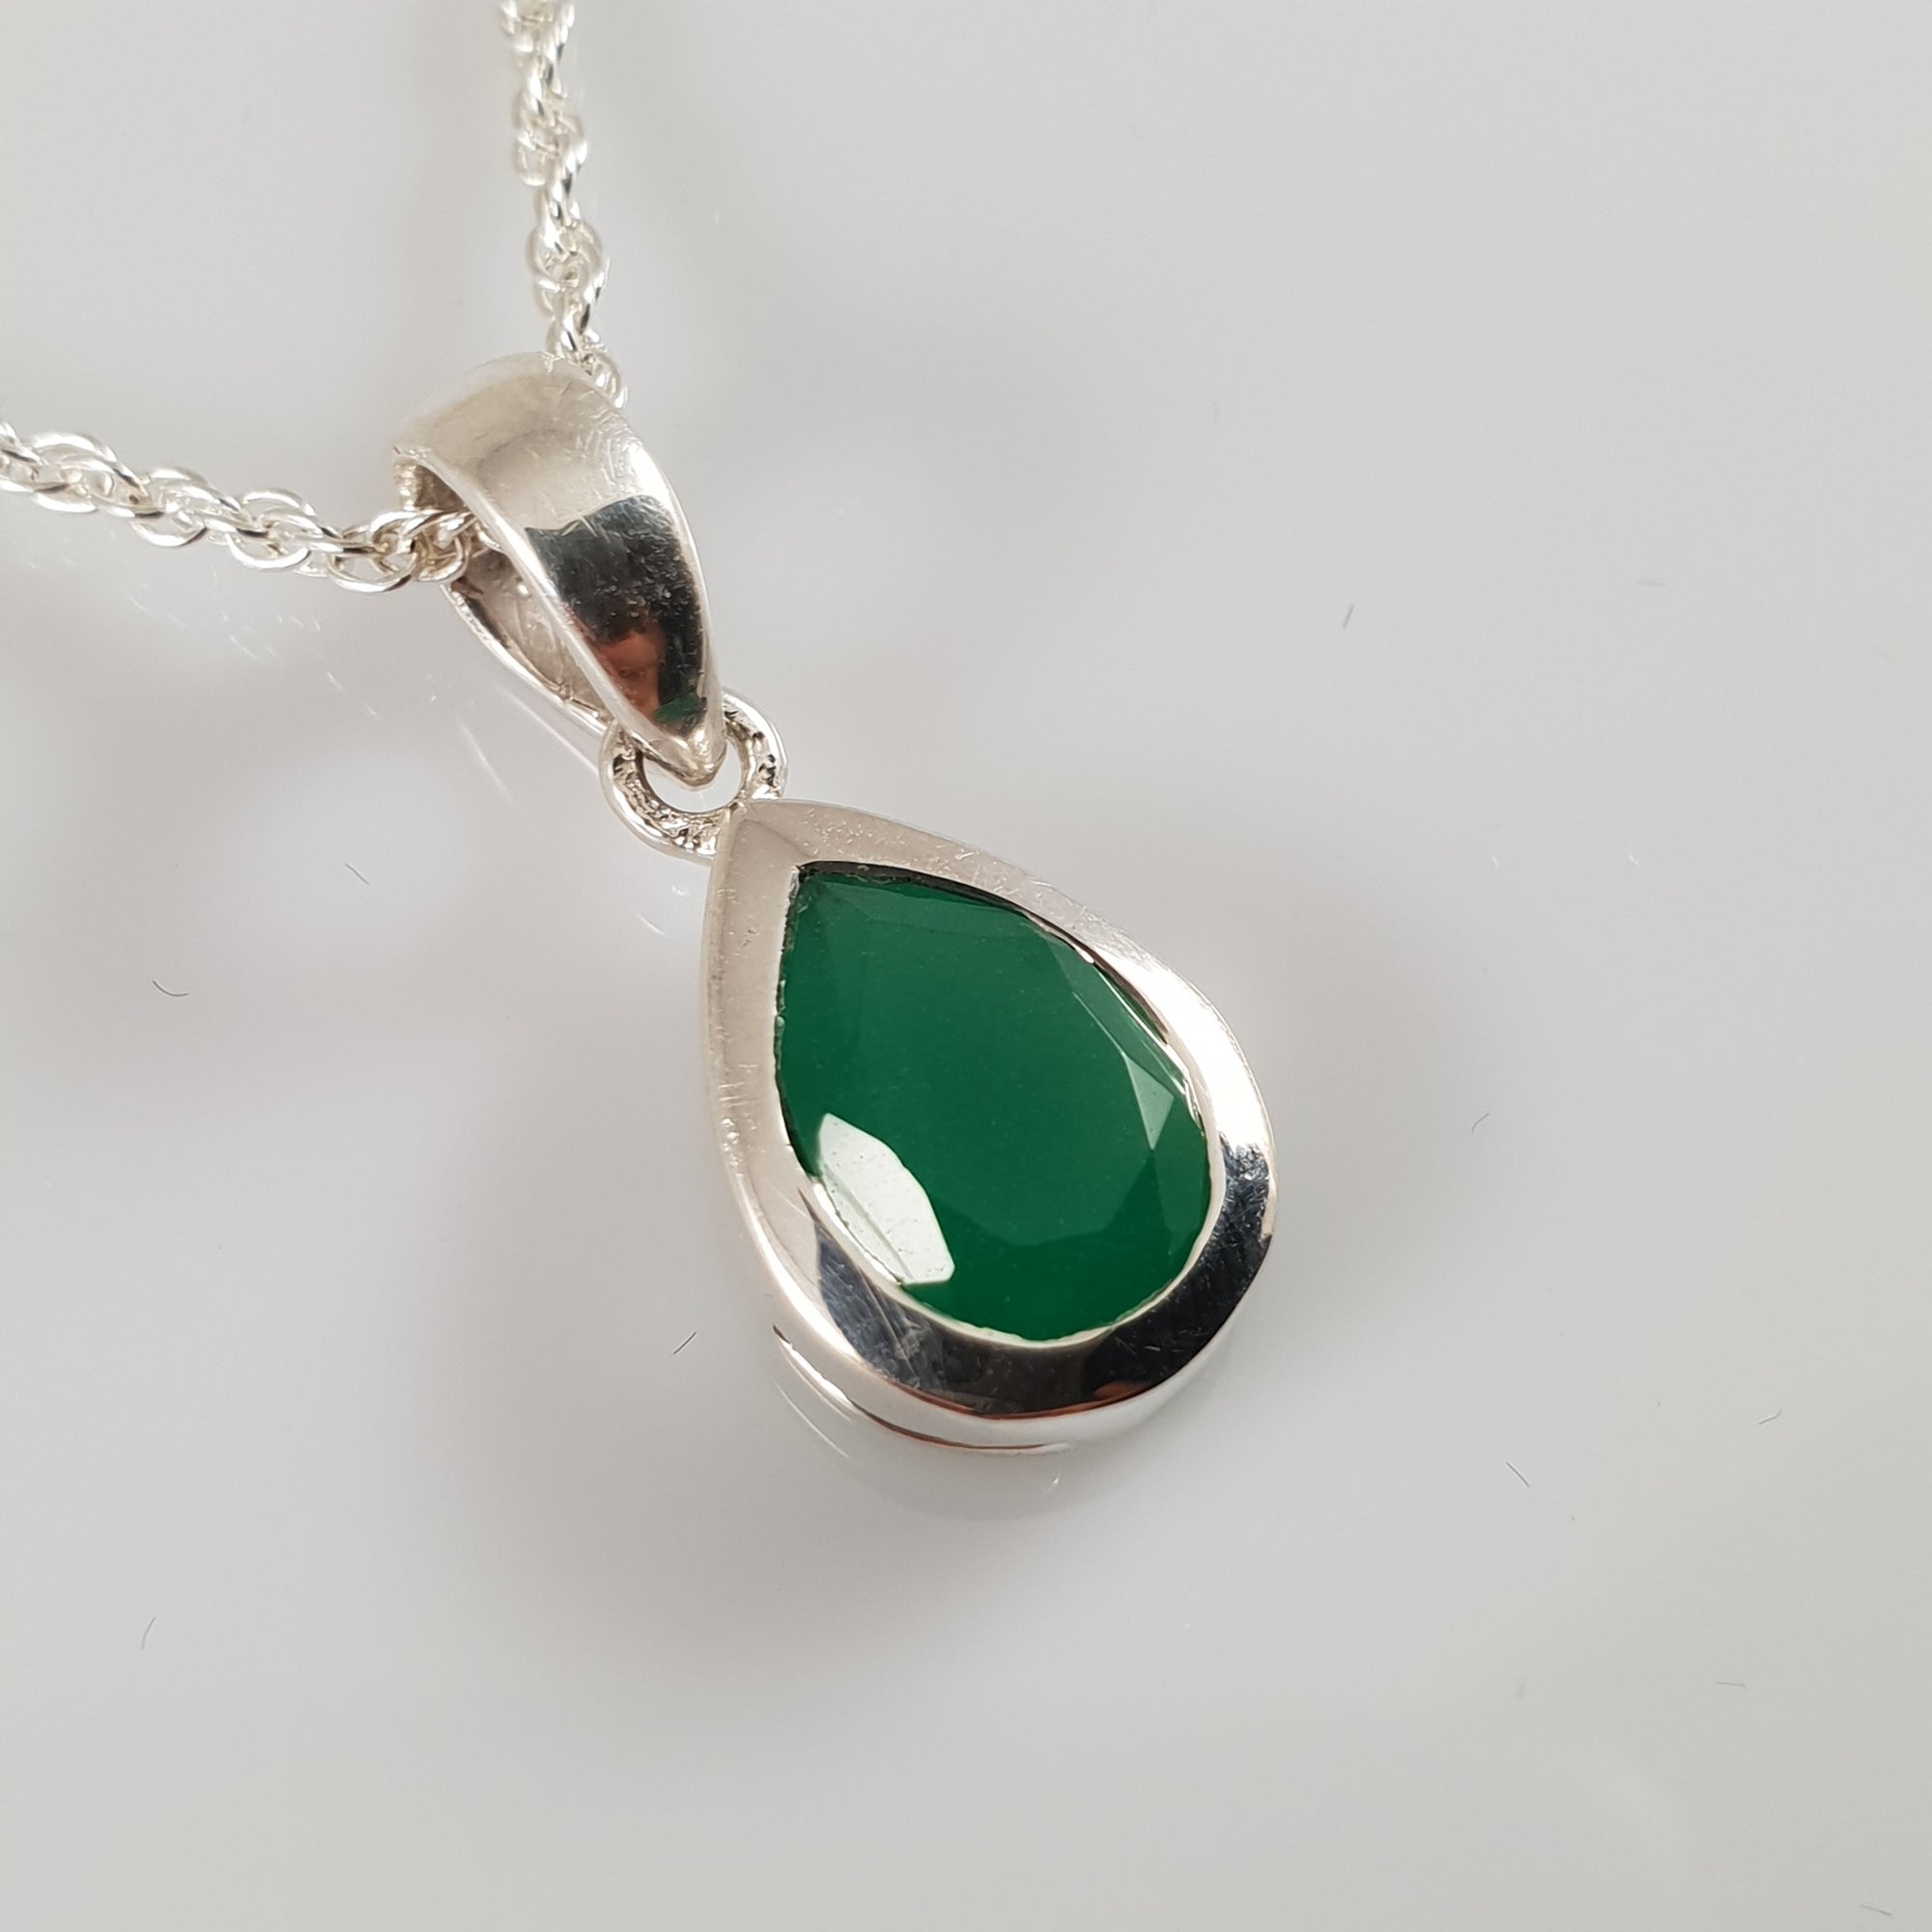 Teardrop Emerald 925 Stirling Silver Pendant - Rivendell Shop NZ